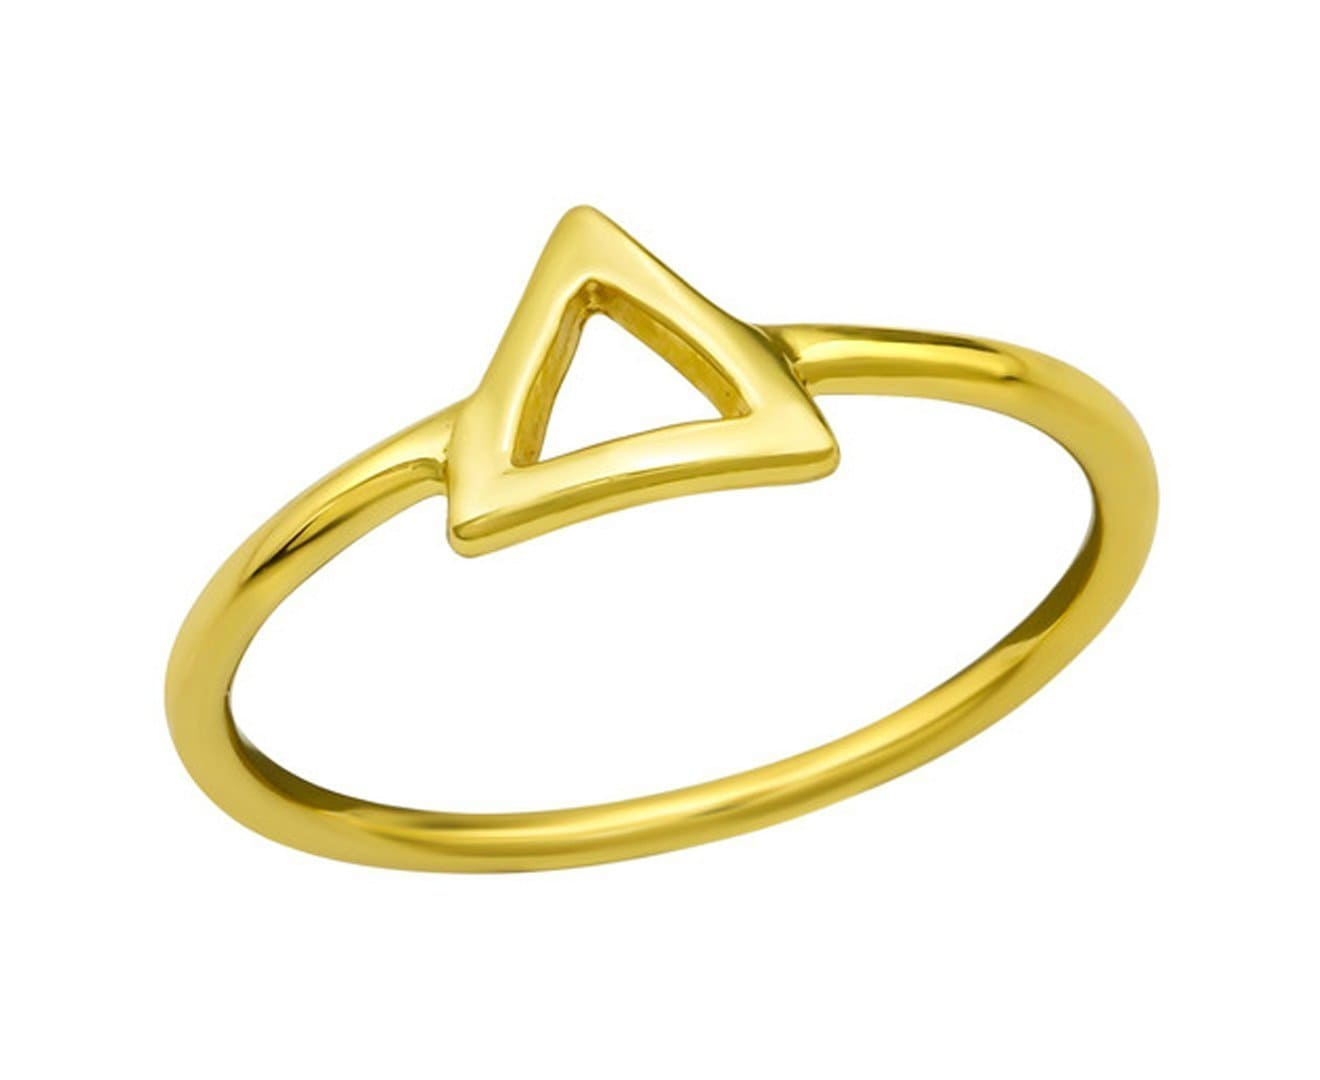 14K Gold Plated Sterling Silver Triangle Ring